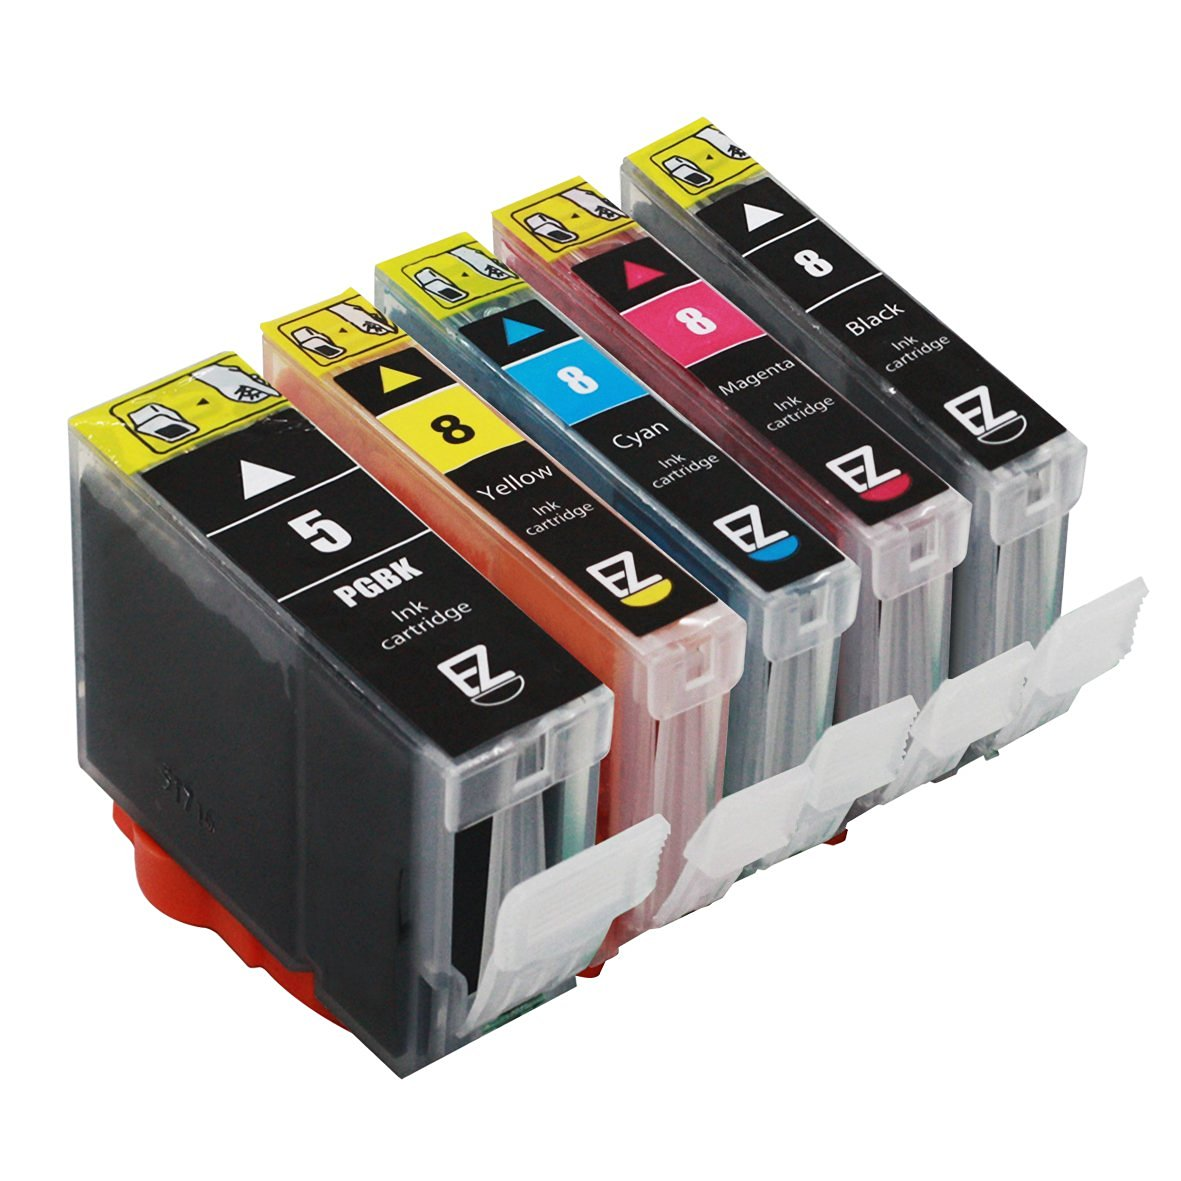 E-Z Ink (TM) Compatible Ink Cartridge Replacement For Canon PGI-5 PGI5 CLI-8 CLI8 (1 Black, 1 Cyan, 1 Magenta, 1 Yellow, 1 Small Black) 5 Pack PGI-5BK CLI-8C CLI-8M CLI-8Y CLI-8BK